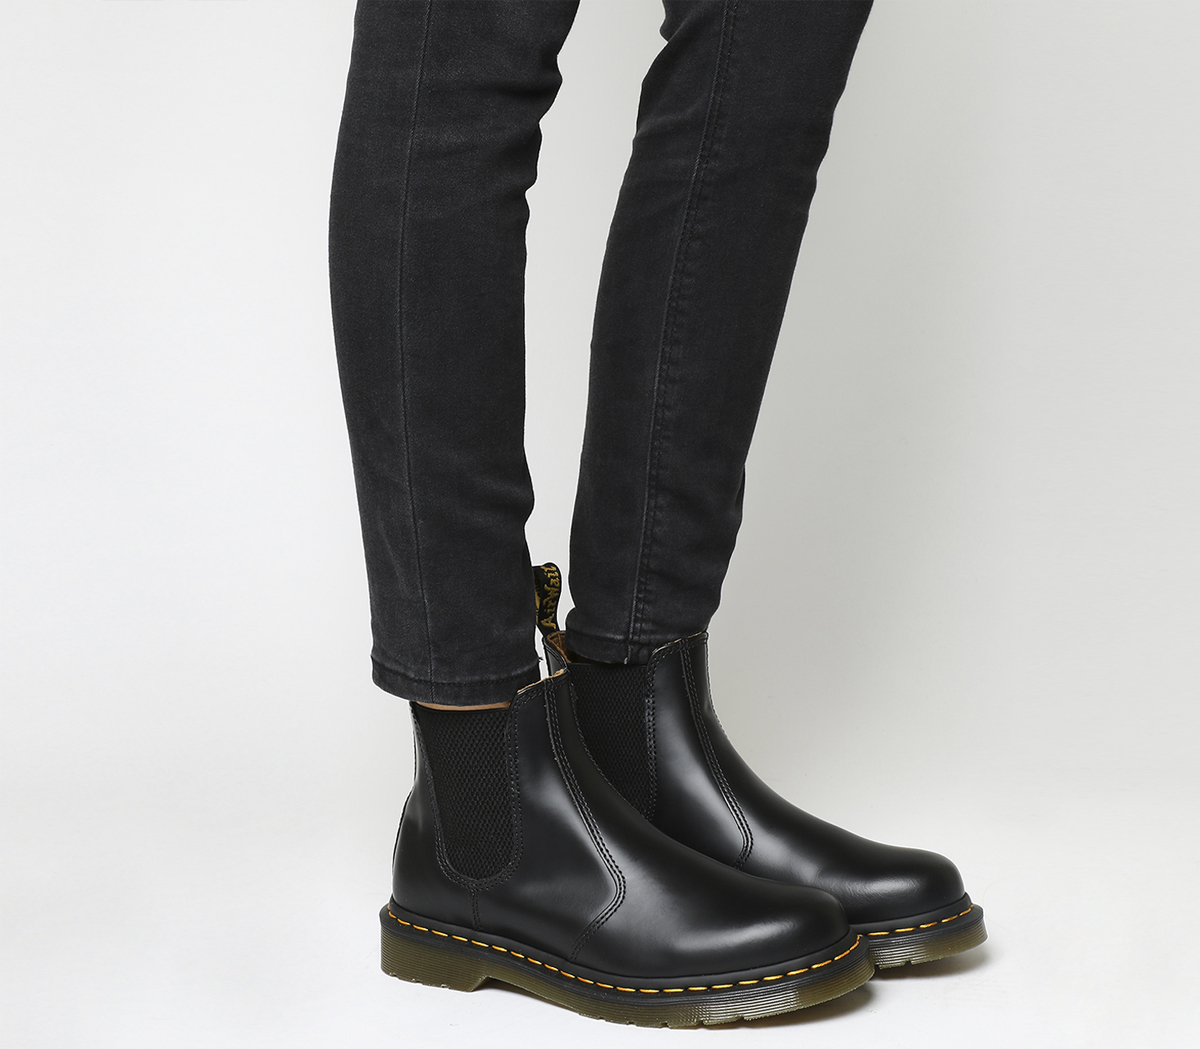 Sentinel Womens Dr. Martens 2976 Chelsea Boots Black Smooth Leather Boots 9da1f0341